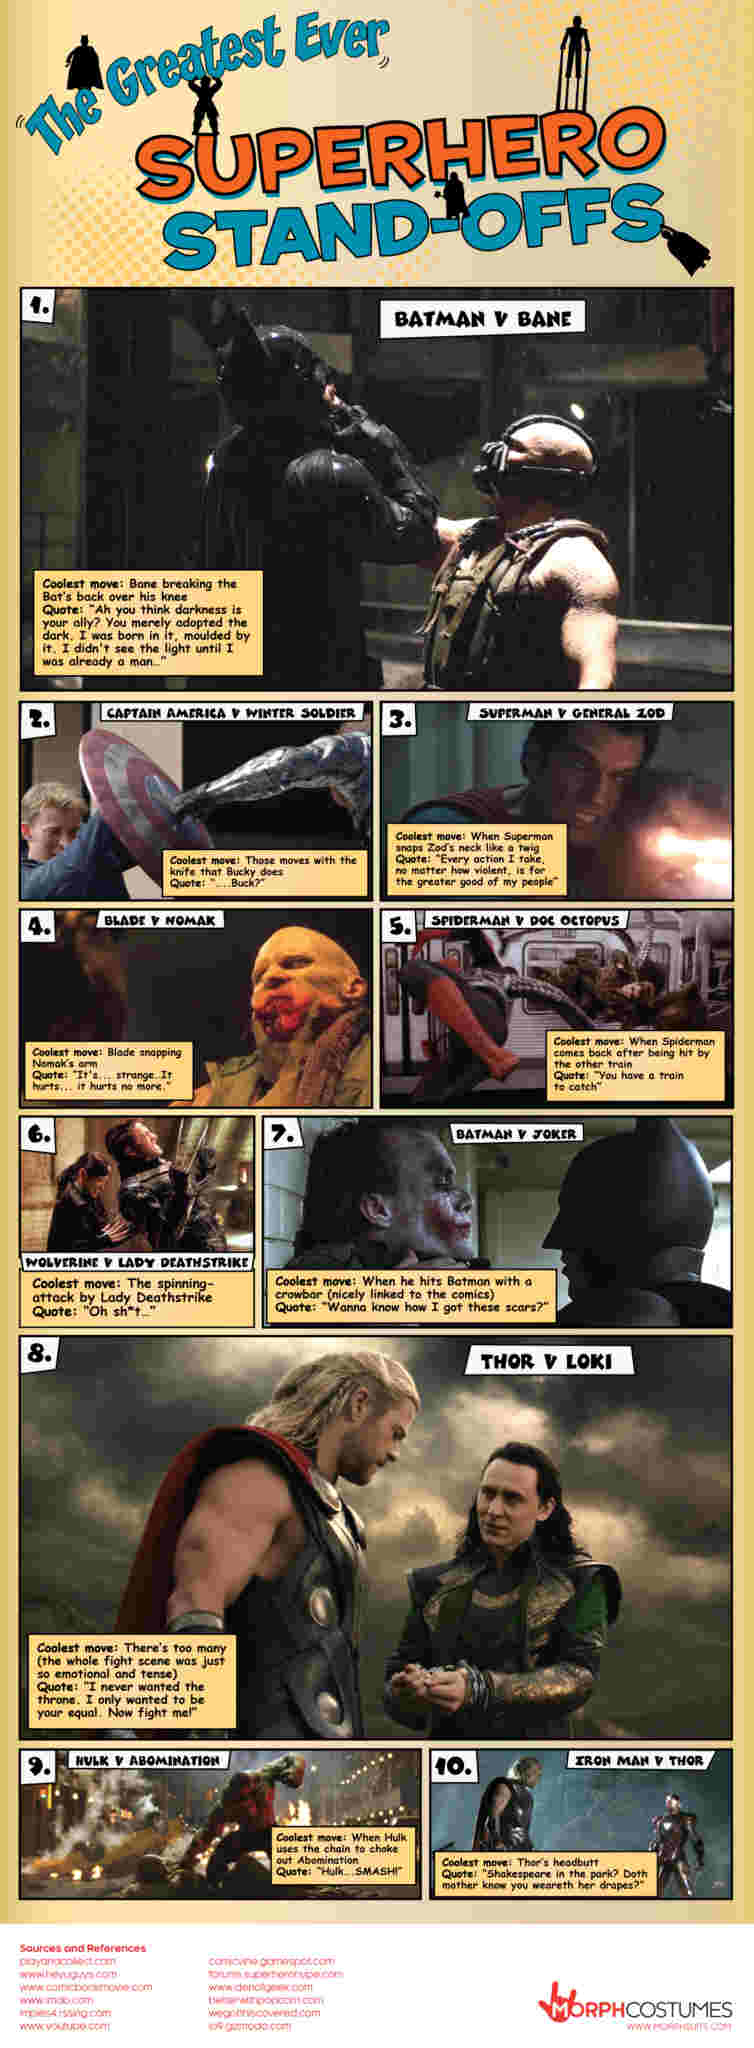 FINAL_The-Greatest-Ever-Superhero-Stand-Offs-Infographic